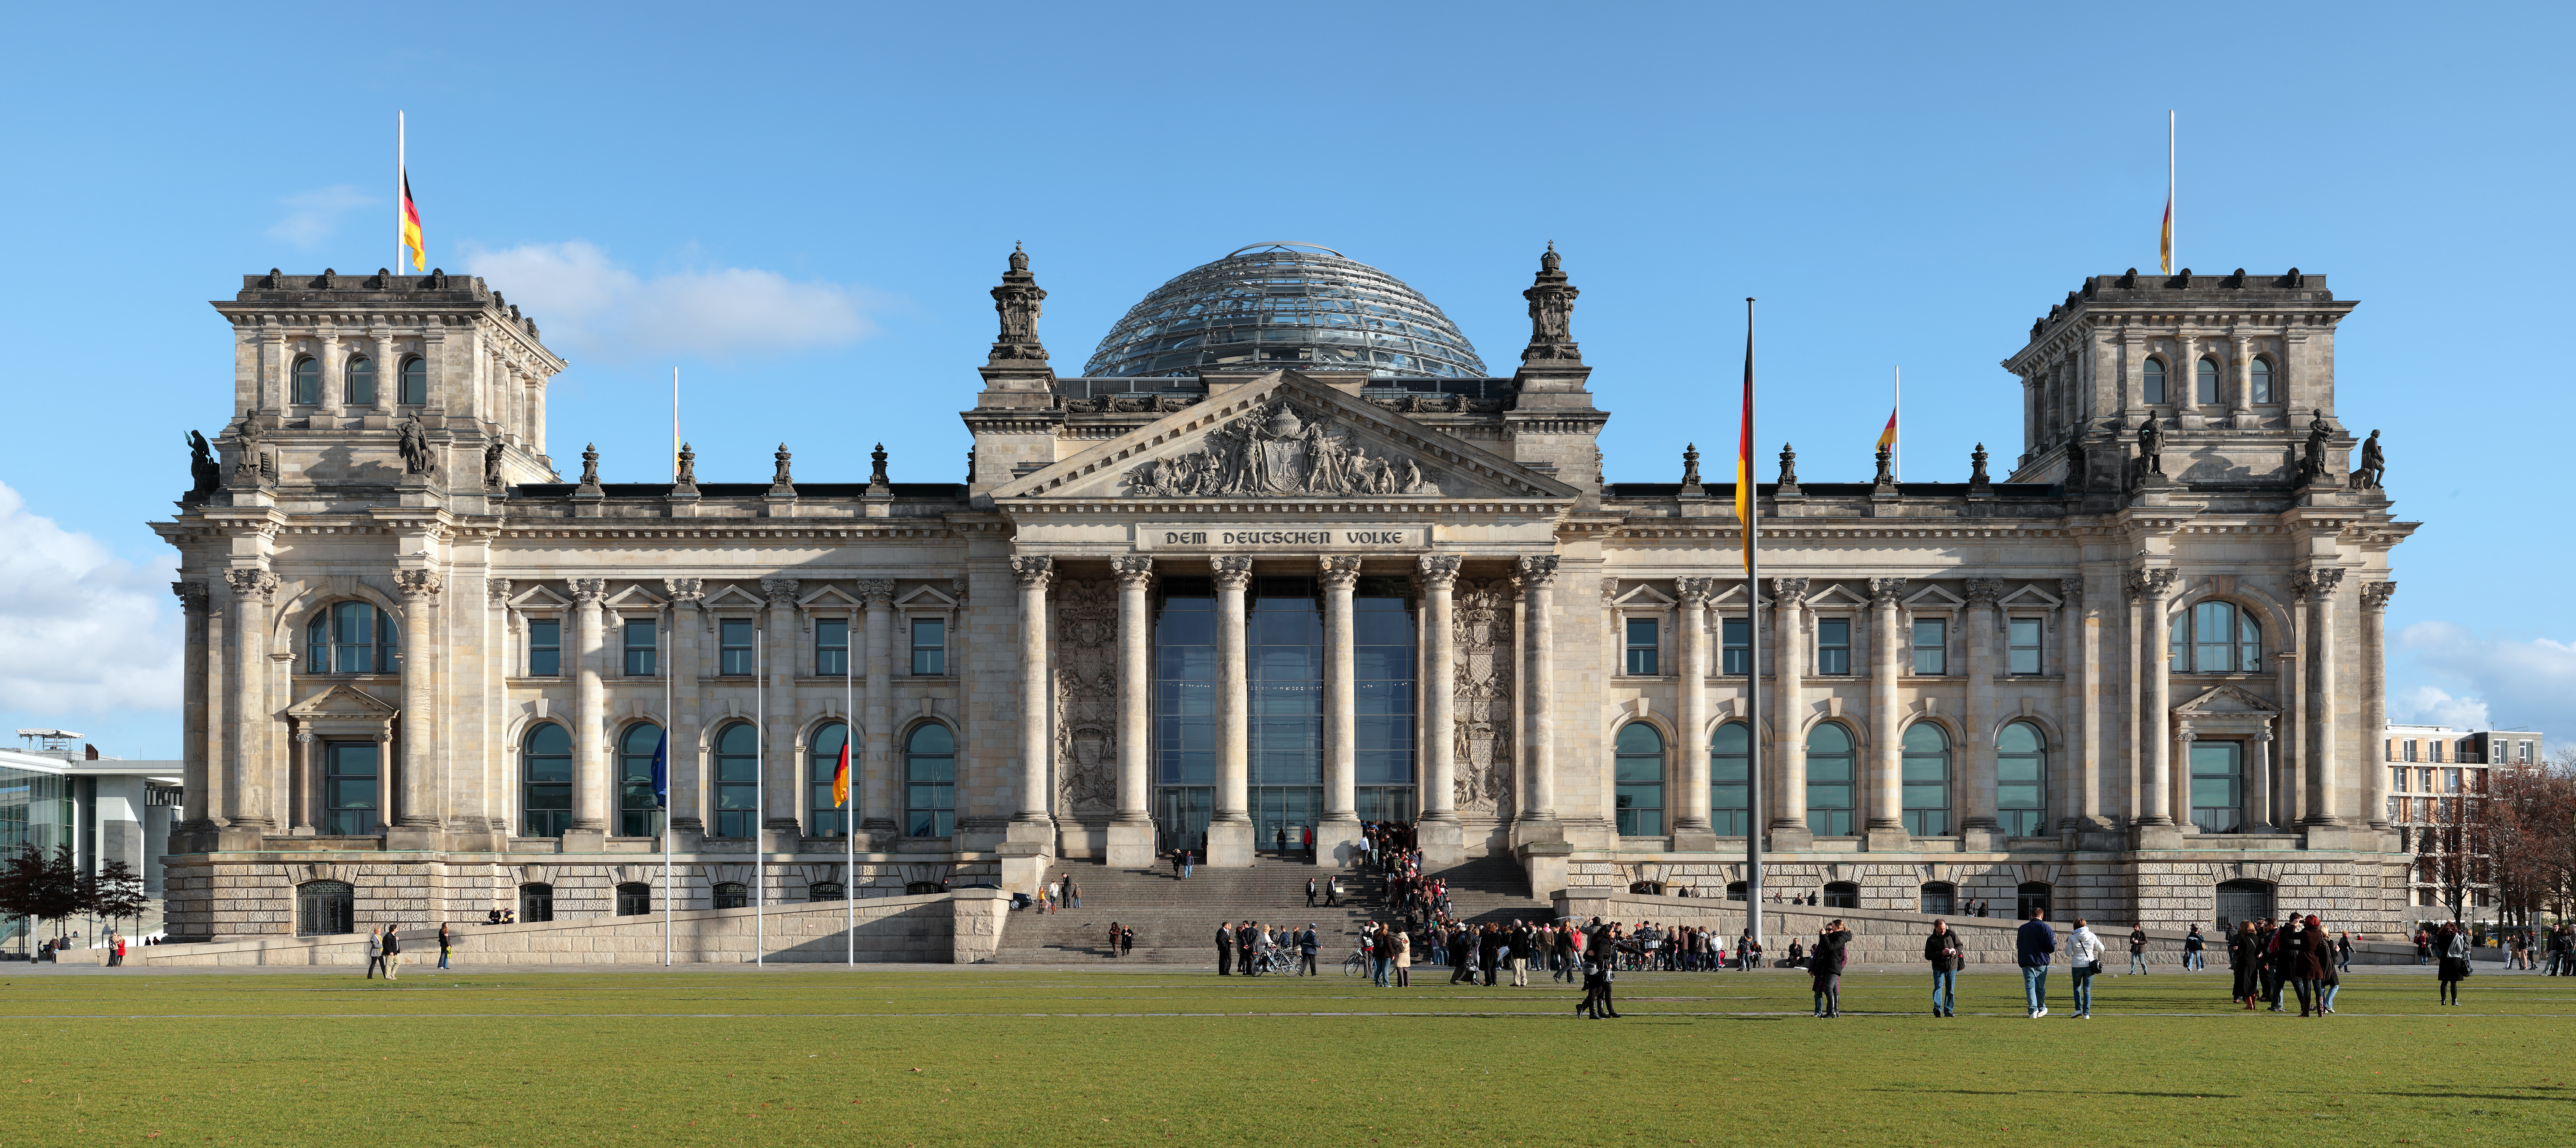 The Reichstag Fire >> Reichstag in Berlin | Sidetracks Germany